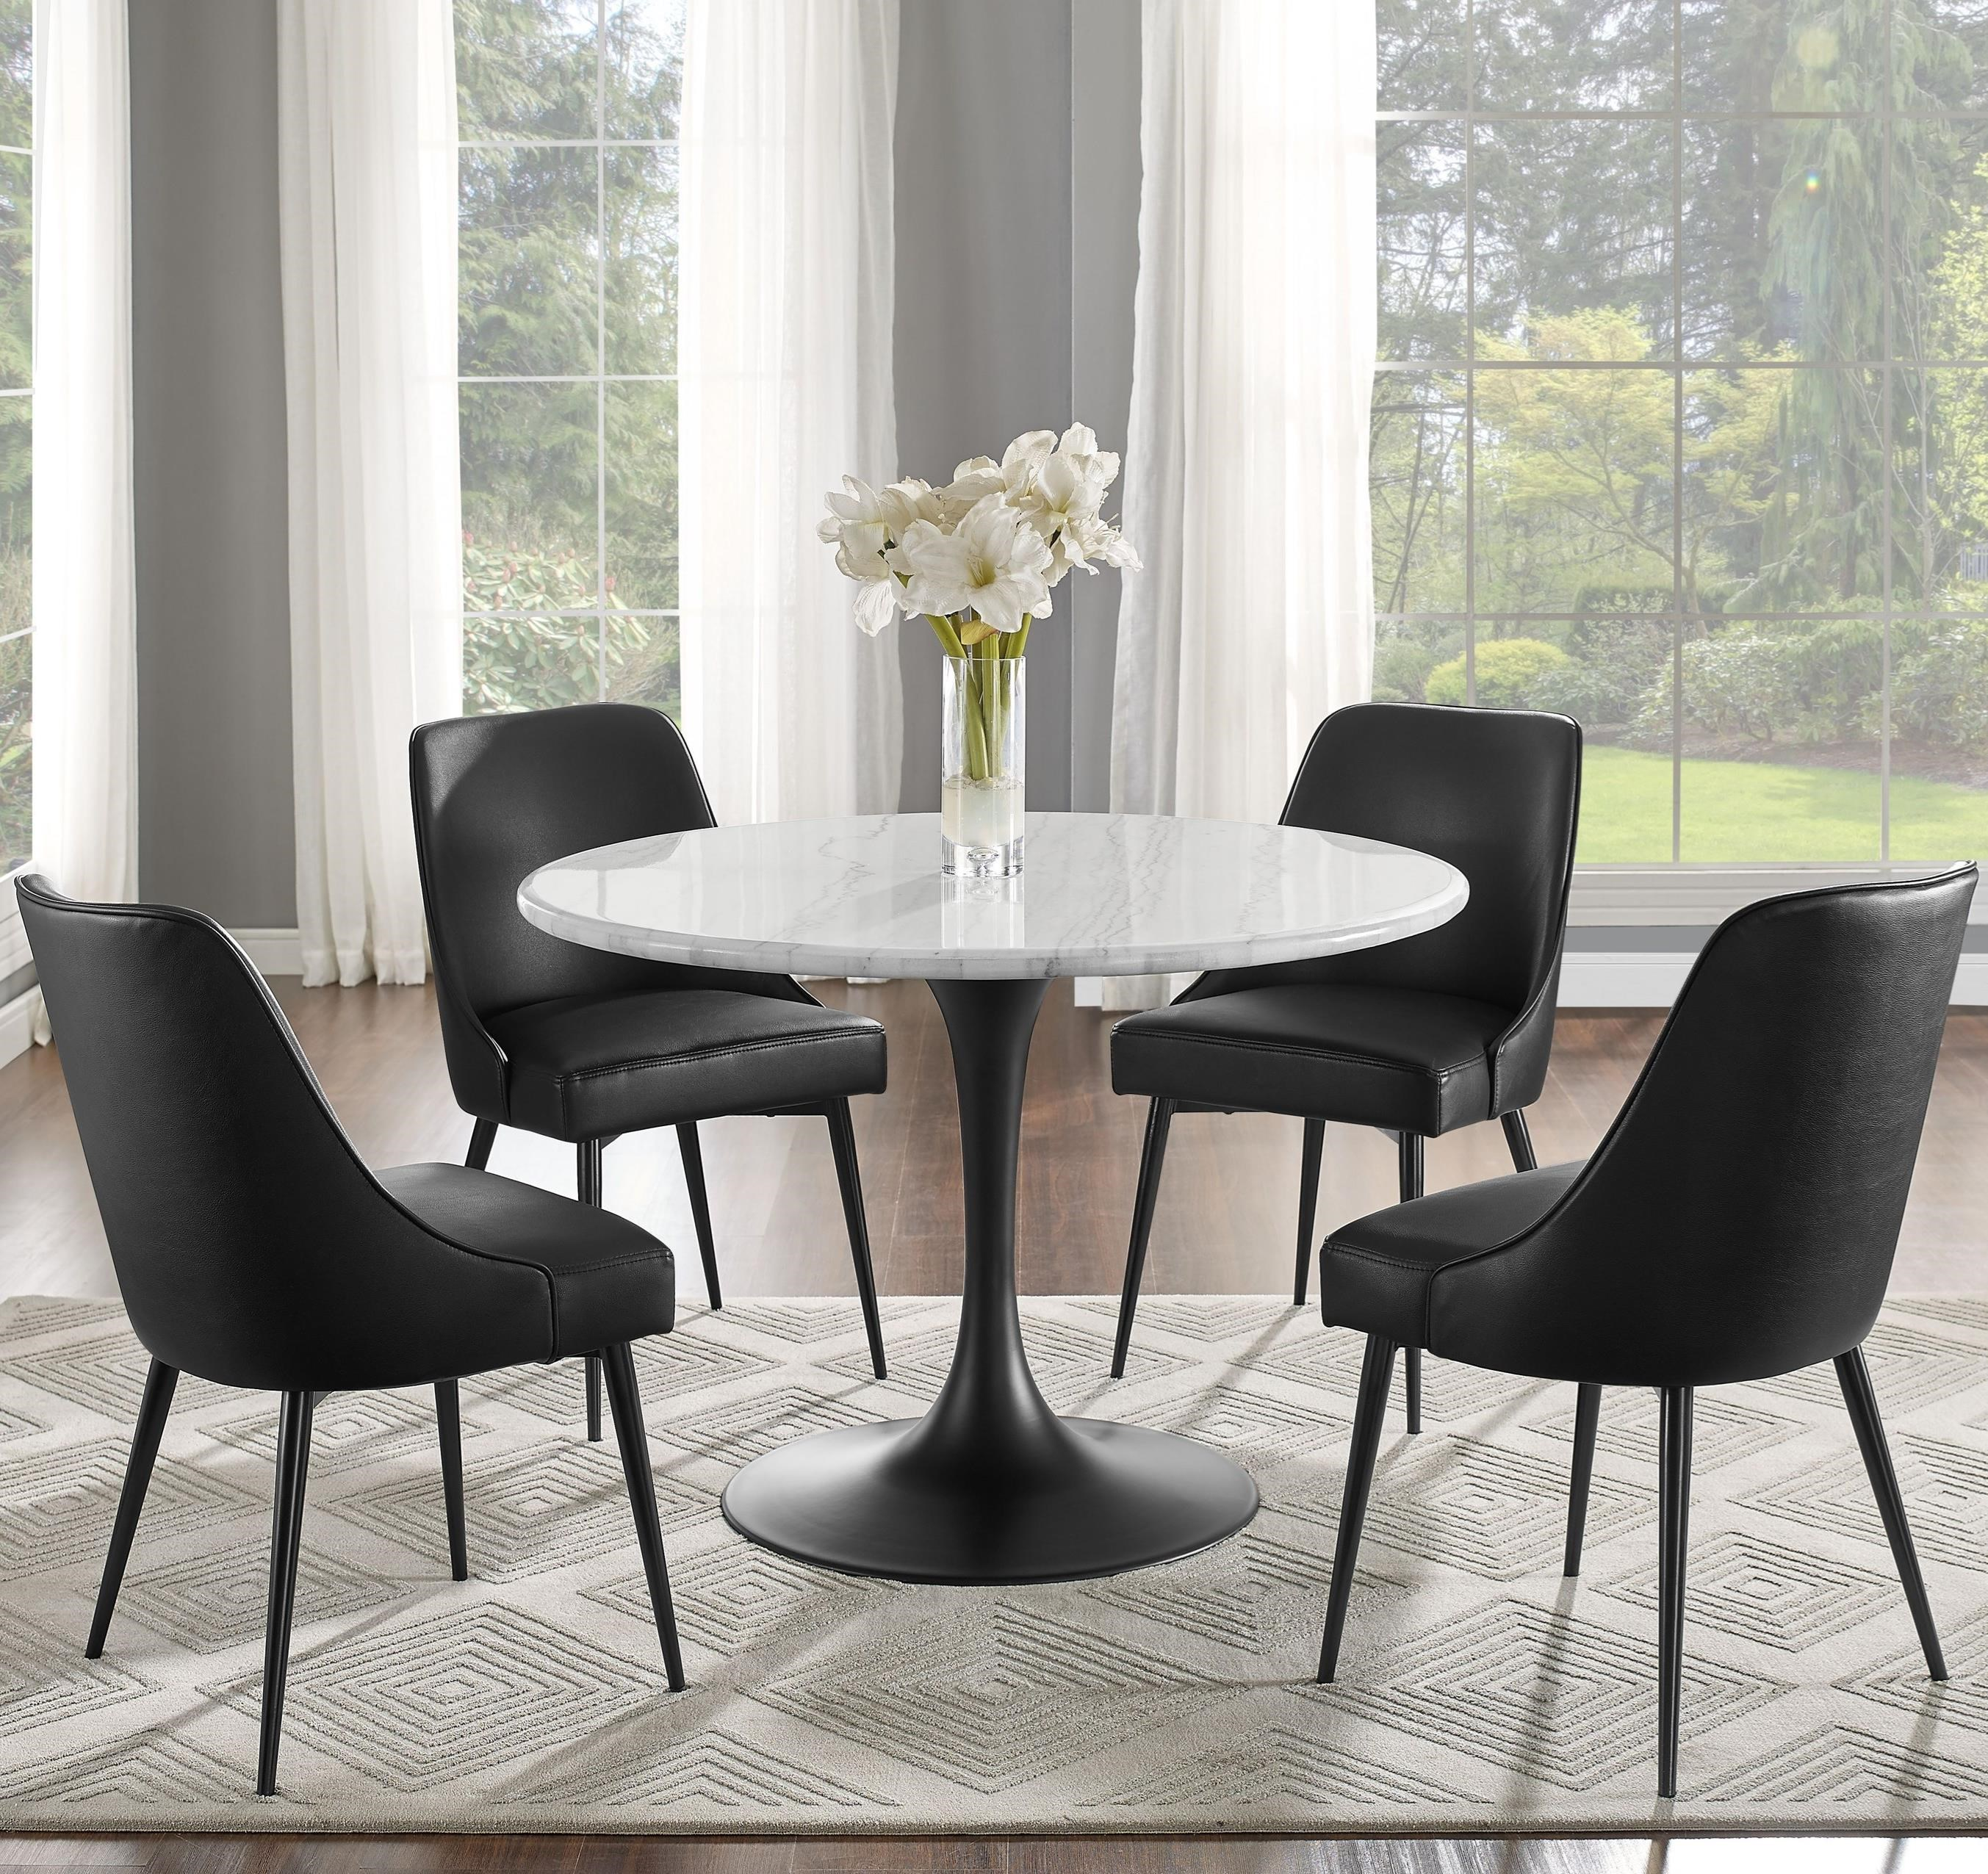 Colfax 5 Pc Dining Set by Steve Silver at Standard Furniture